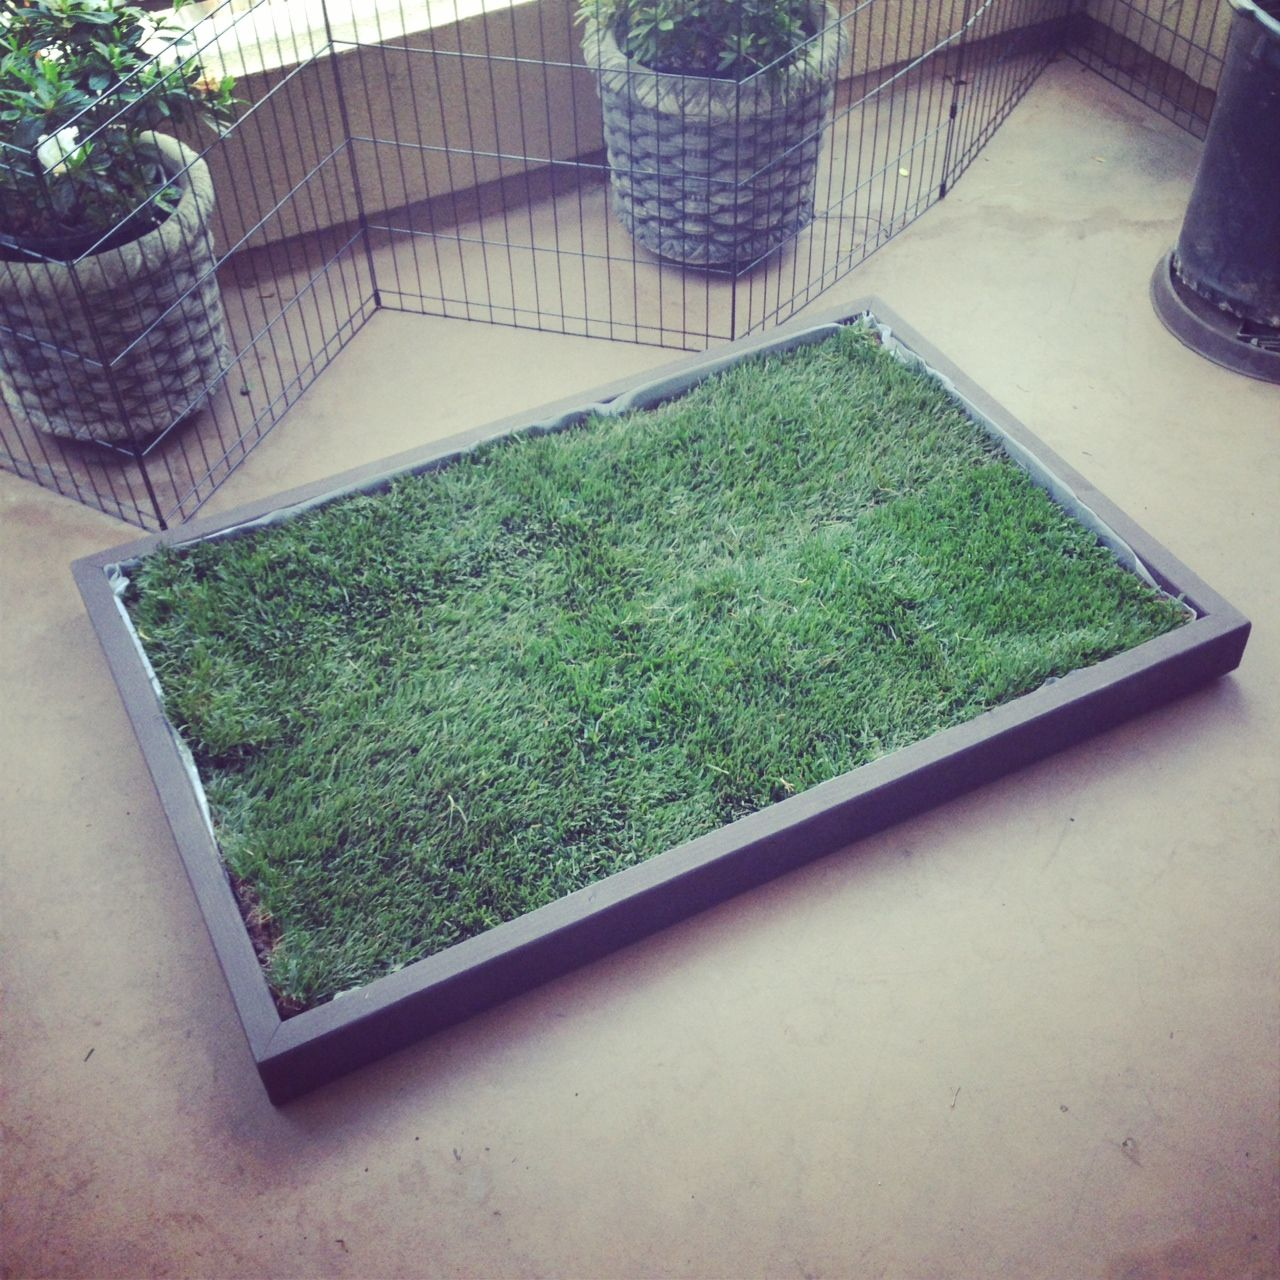 This Grass Litter Box For Dogs In Brentwood California Dog Puppy Pup Cute Dogsofpinterest Pet Pets Ani Dog Grass Patch Dog Potty Patch Dog Potty Area